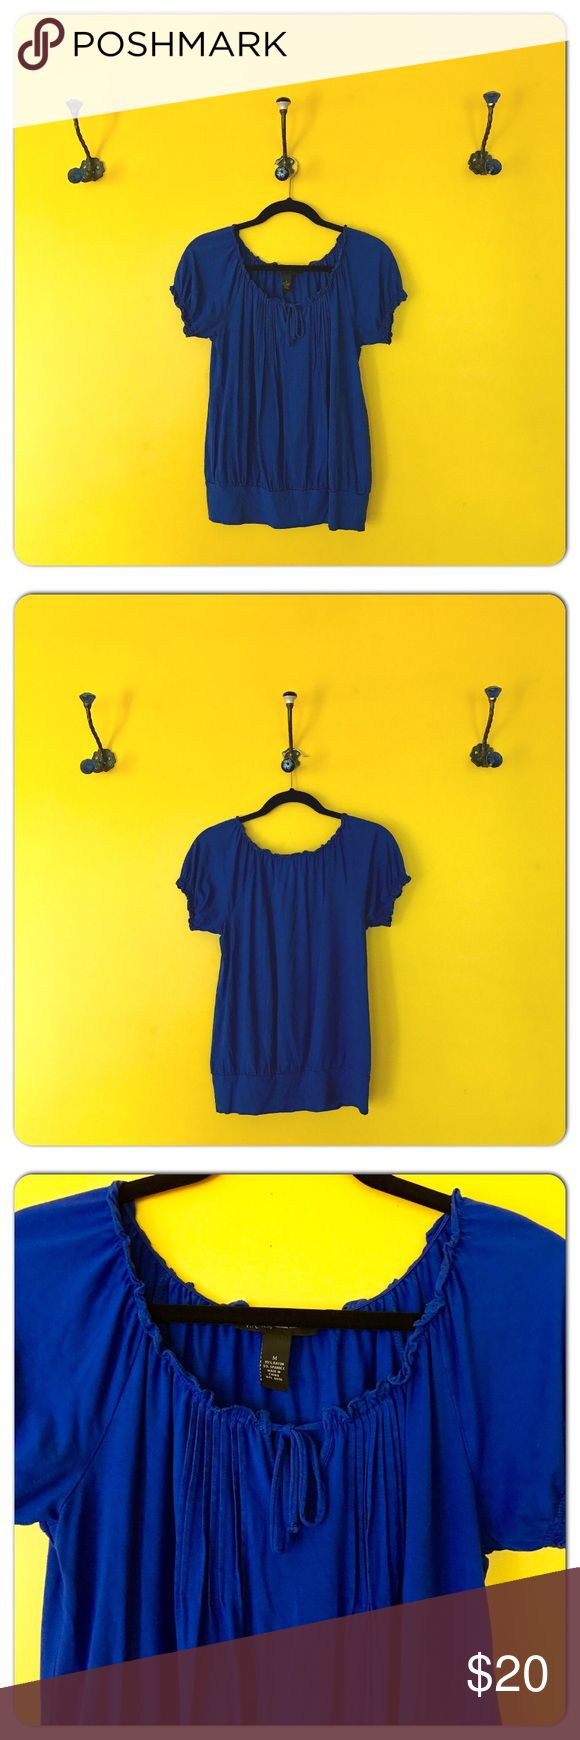 INC Cobalt Blue Short Sleeve Top INC Cobalt Blue Short Sleeve Top.  Vibrant blue with a tie neckline, pleat detail down the front, elasticized ruffled band on sleeve and a banded bottom that is not too binding.   Approximate Measurements:  B: 18  L: 24 INC International Concepts Tops Tees - Short Sleeve